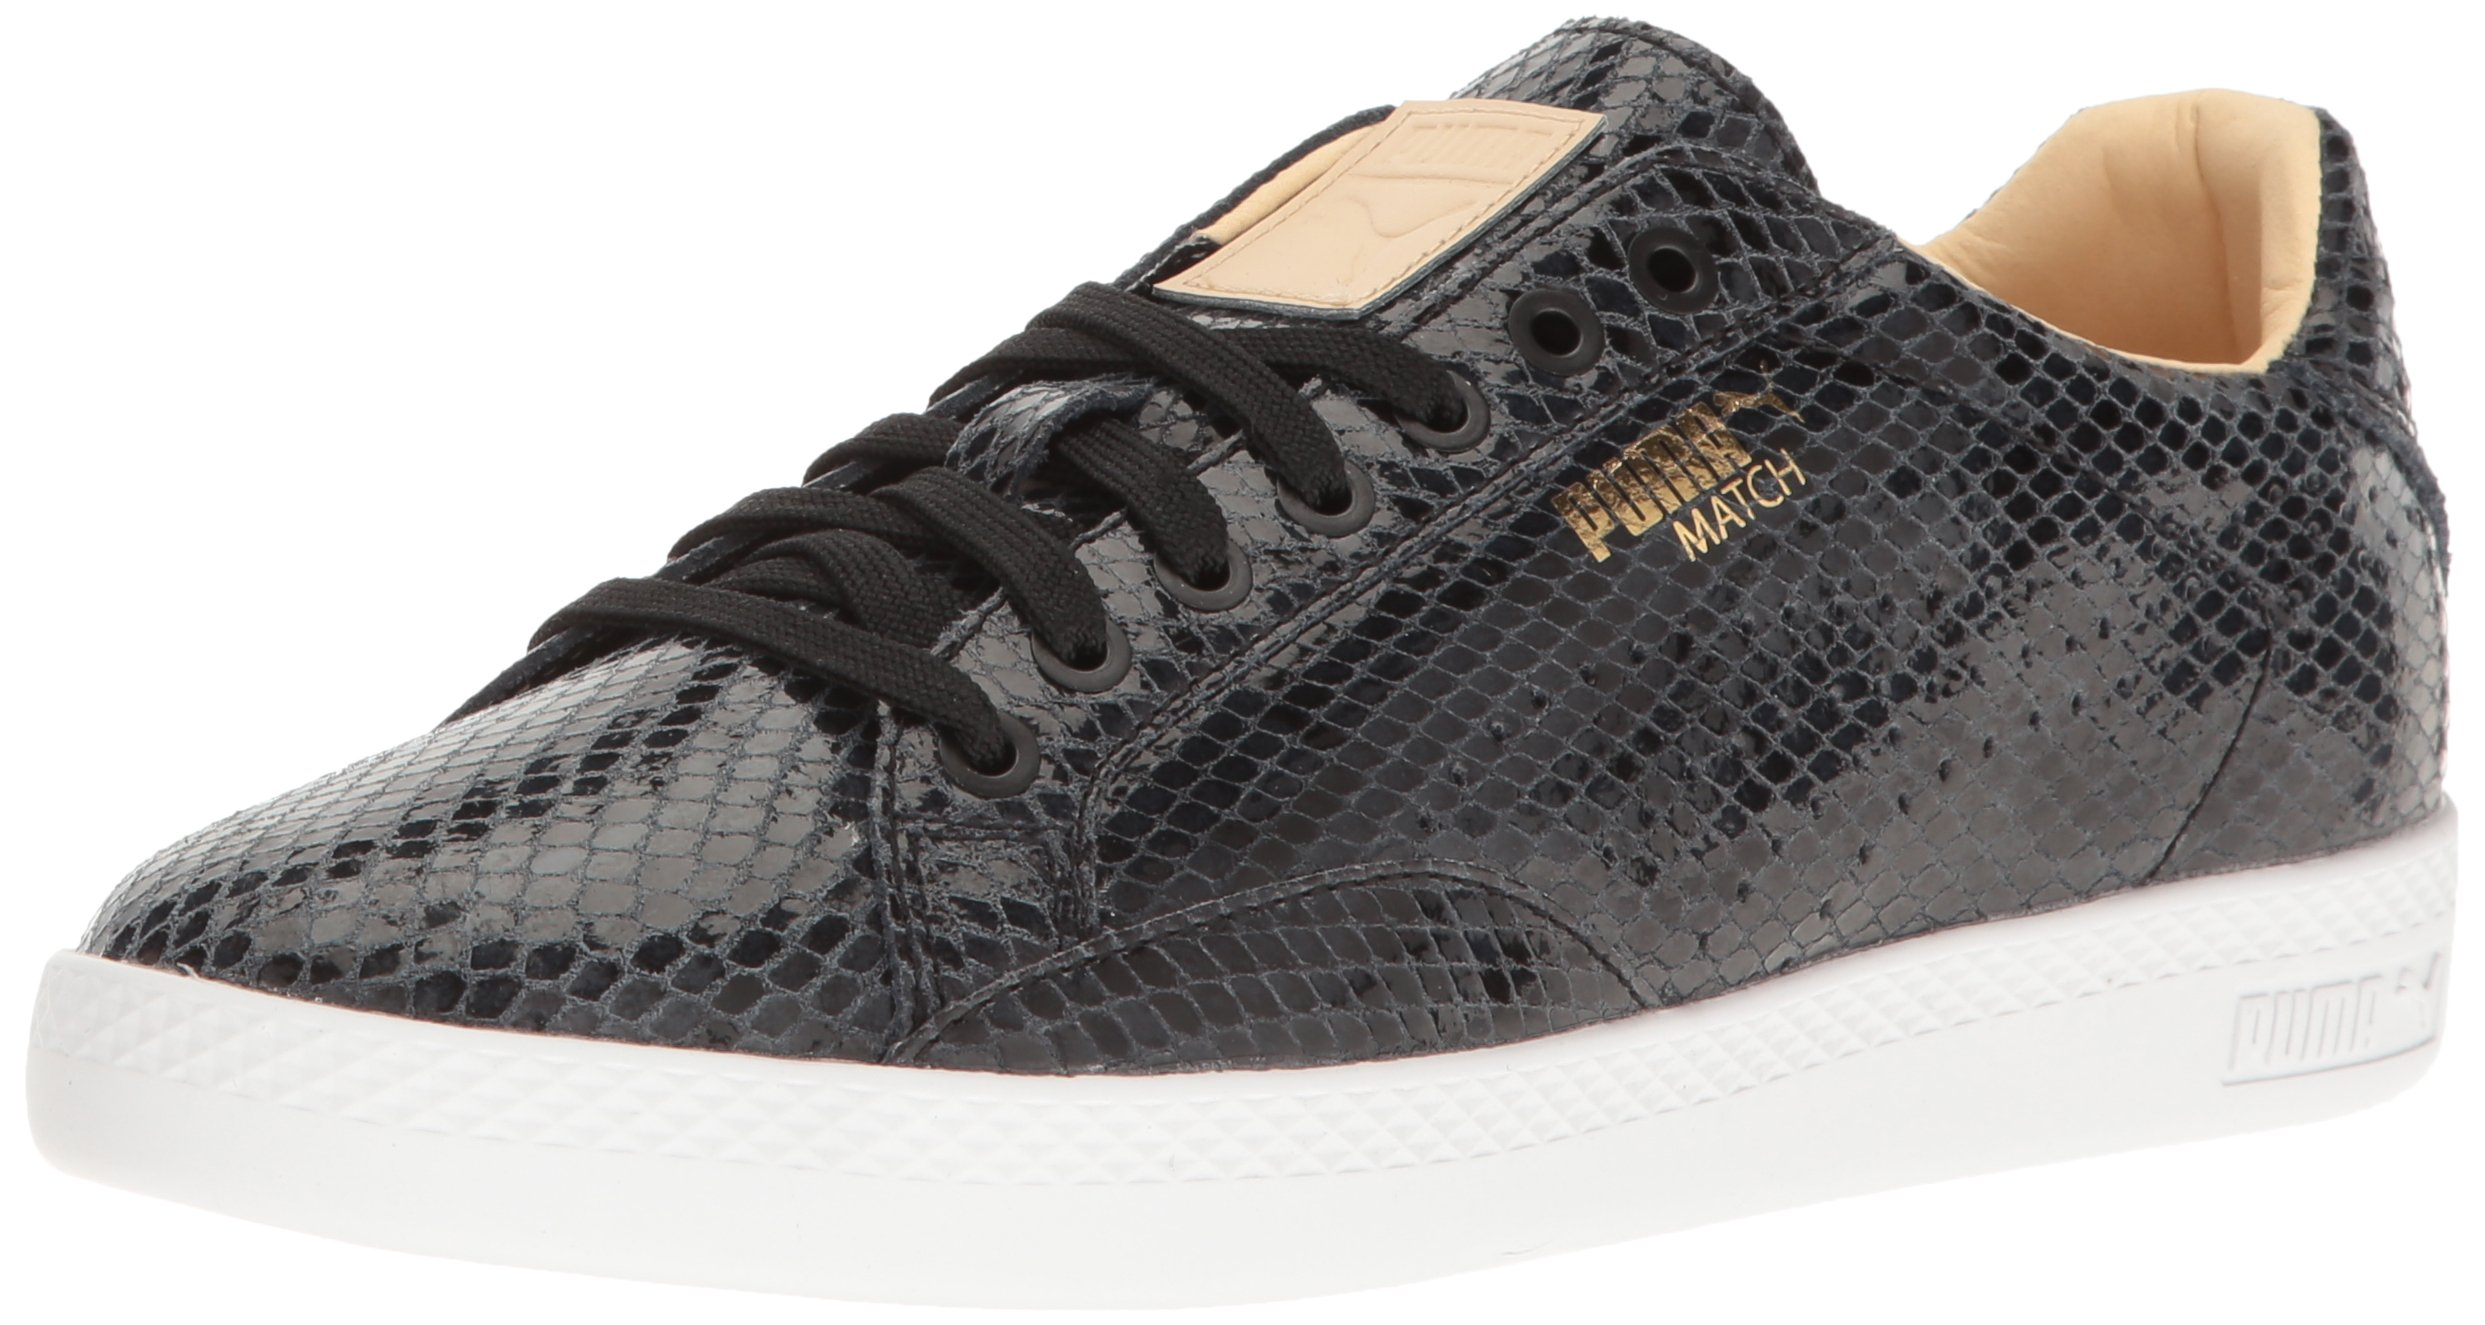 PUMA Women's Match Animal WN's Shoe, Black Natural V, 8.5 M US by PUMA